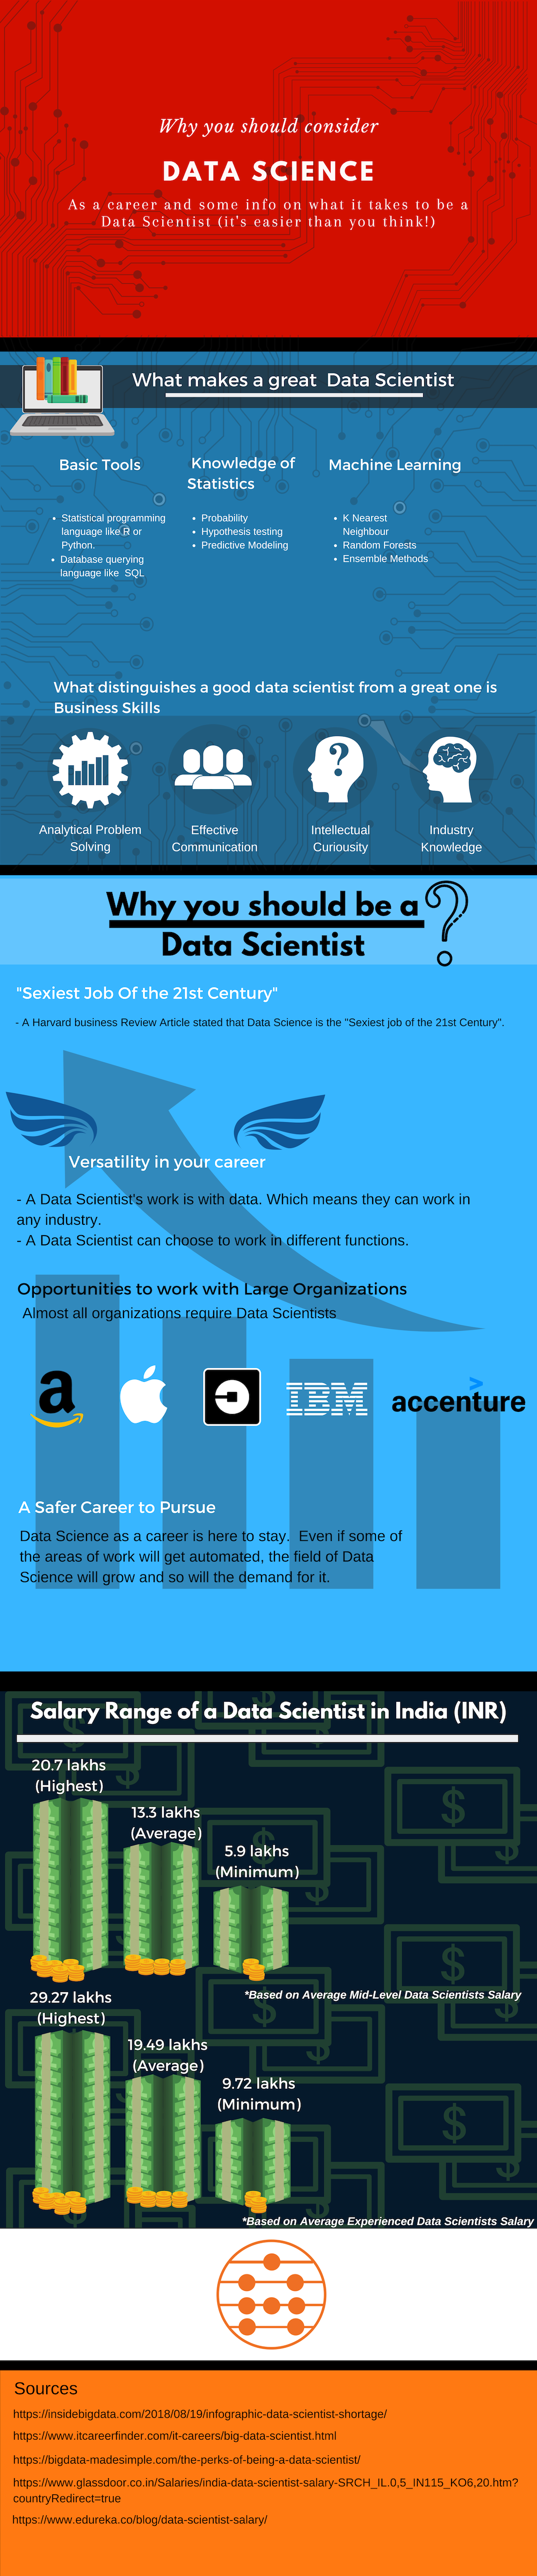 Copy of Data Science_ R.A.P Infographic Full Version.png